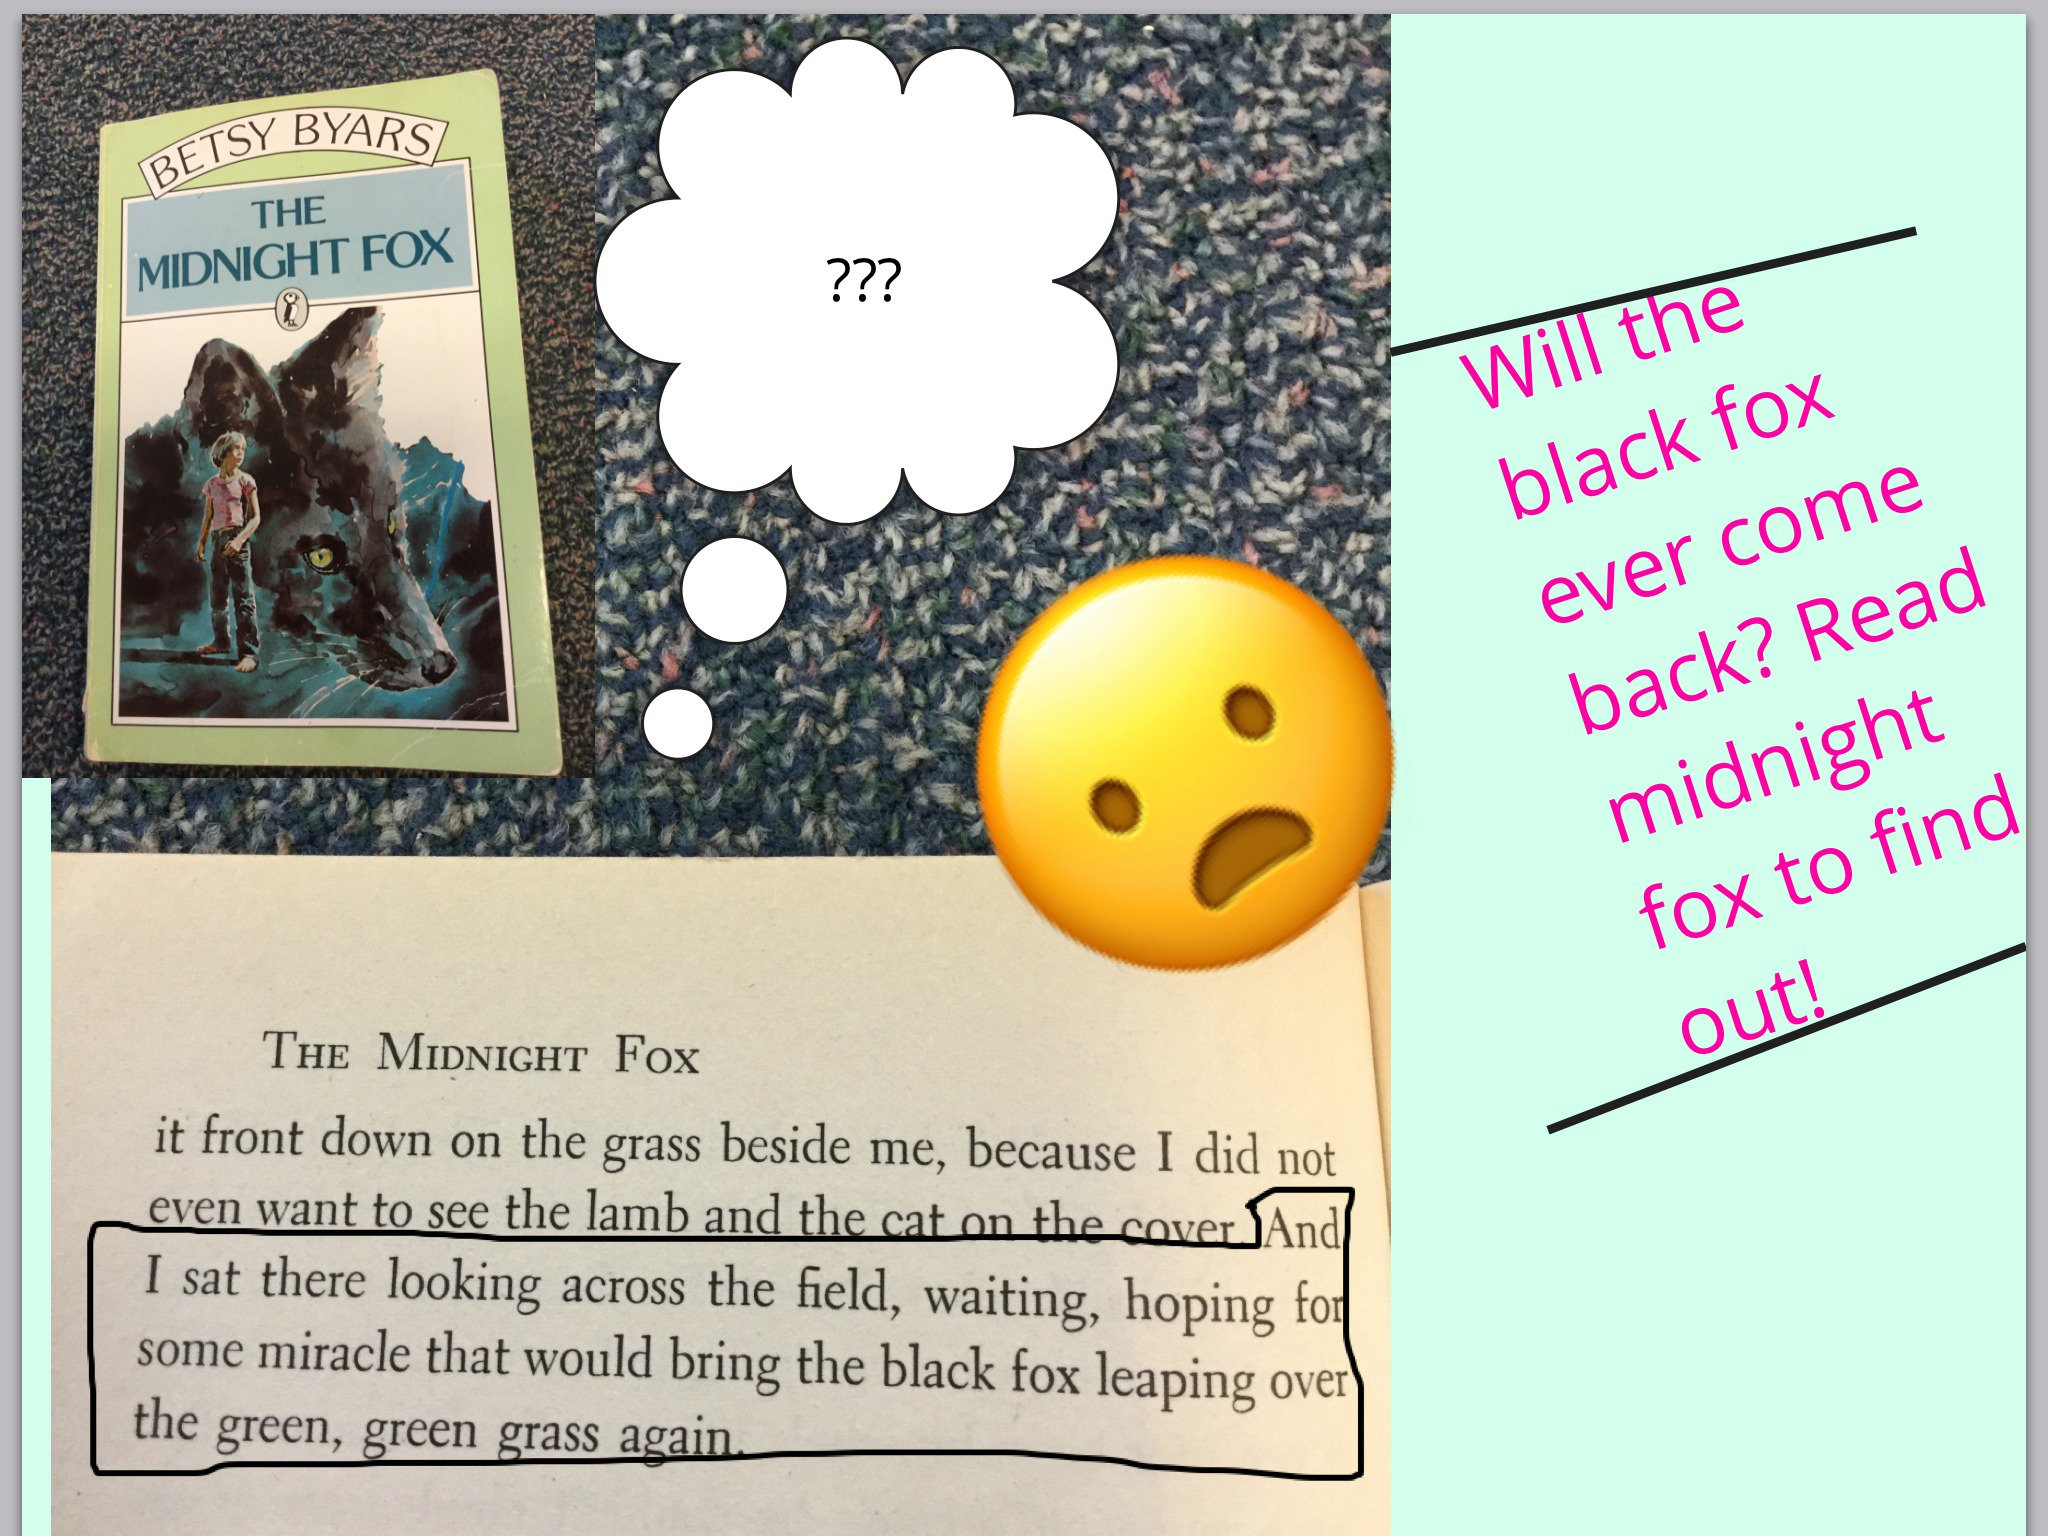 #booksnapswk2 #booksnaps KN_4Vo  sharing about Midnight Fox @verovoig #betl https://t.co/QALLGKWhSe